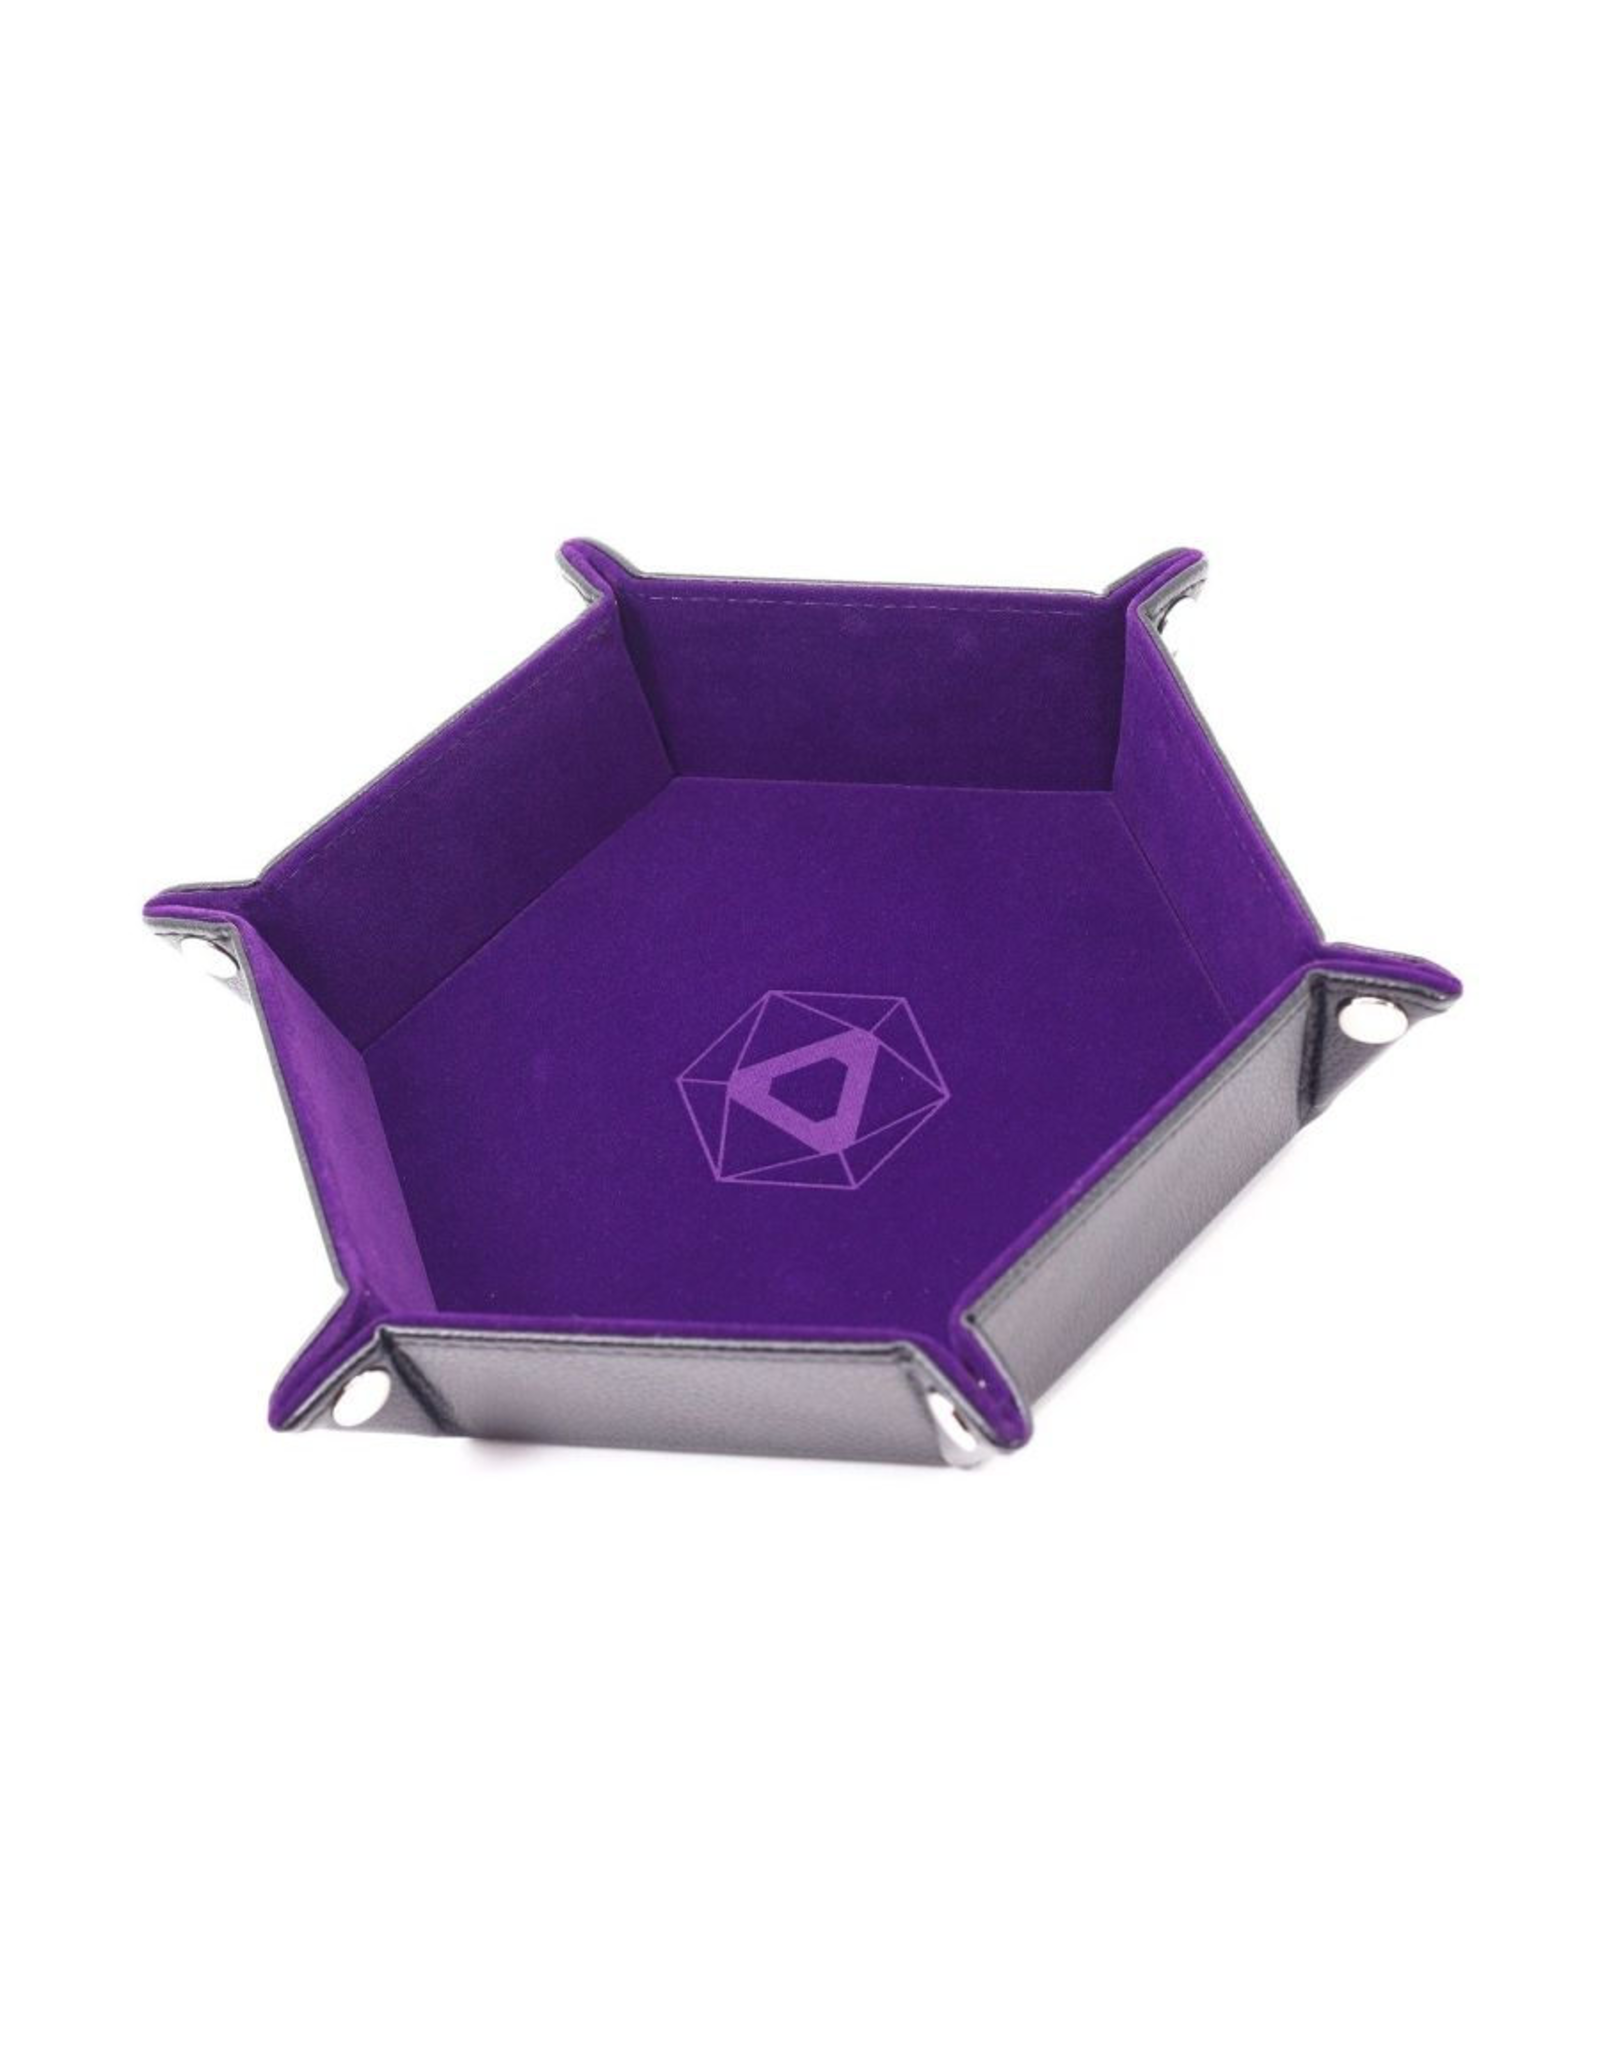 Die Hard Dice Die Hard Dice: Dice Tray Hex Purple